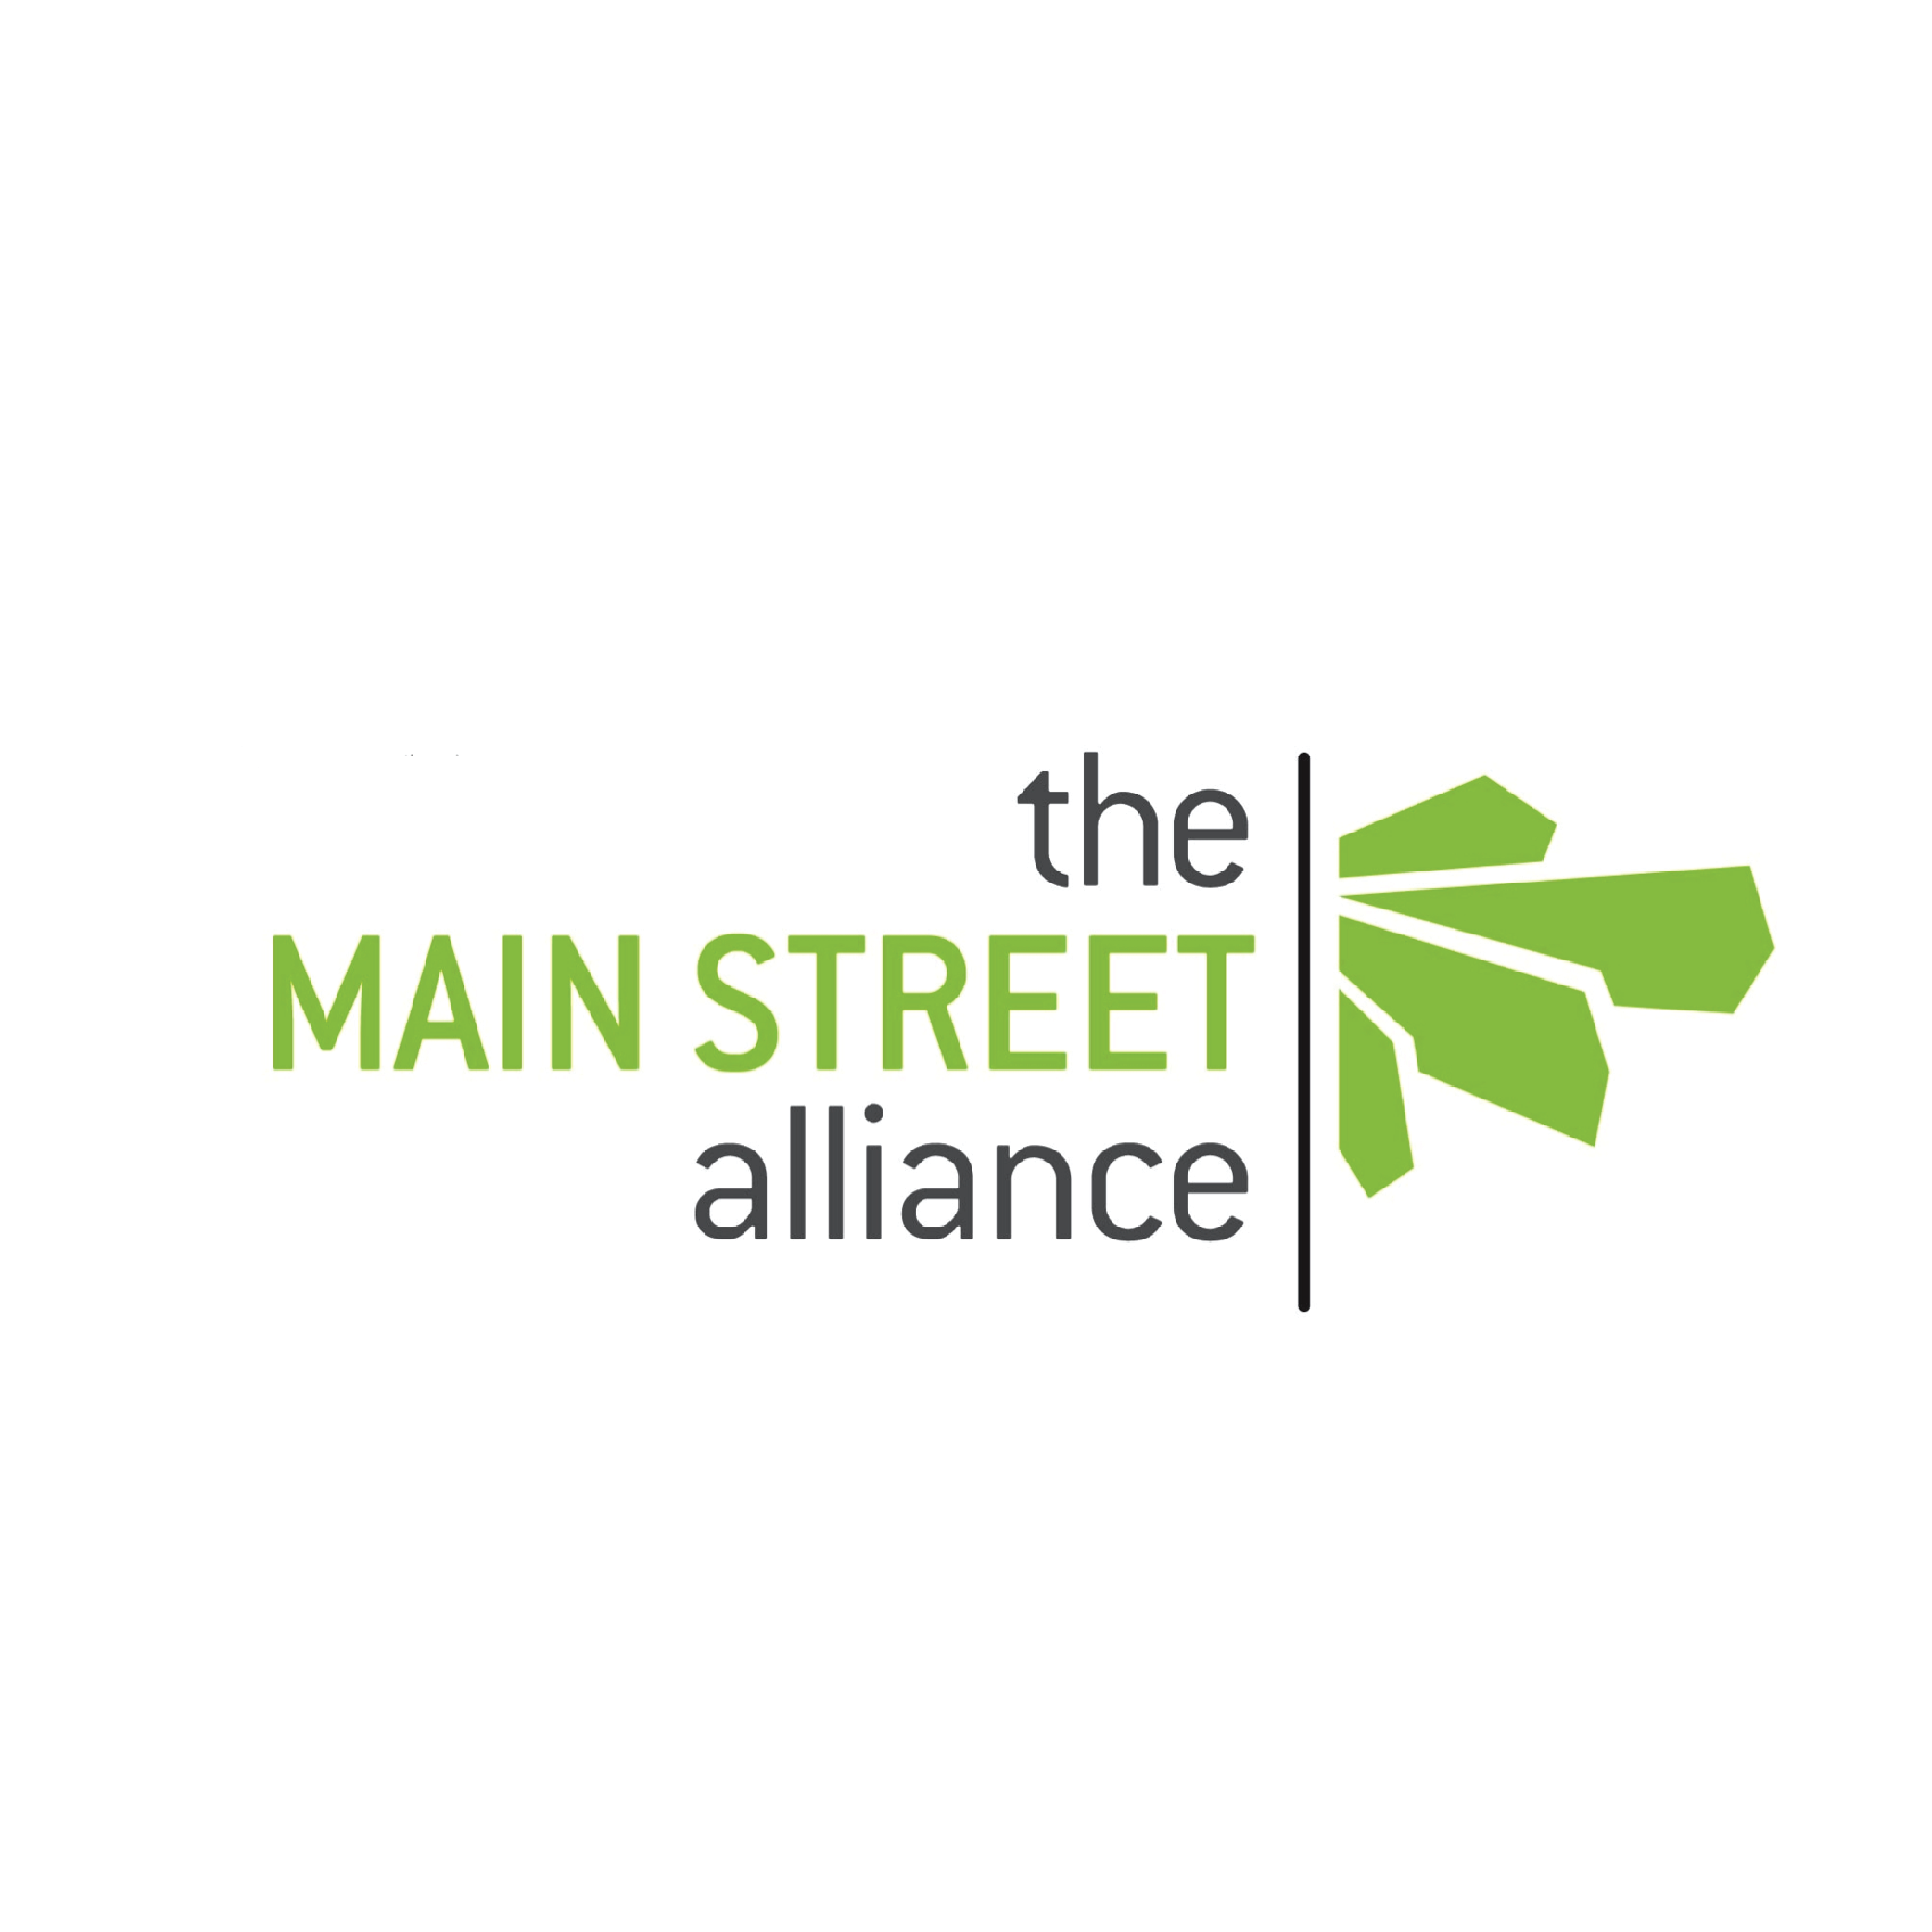 The Main Street Alliance